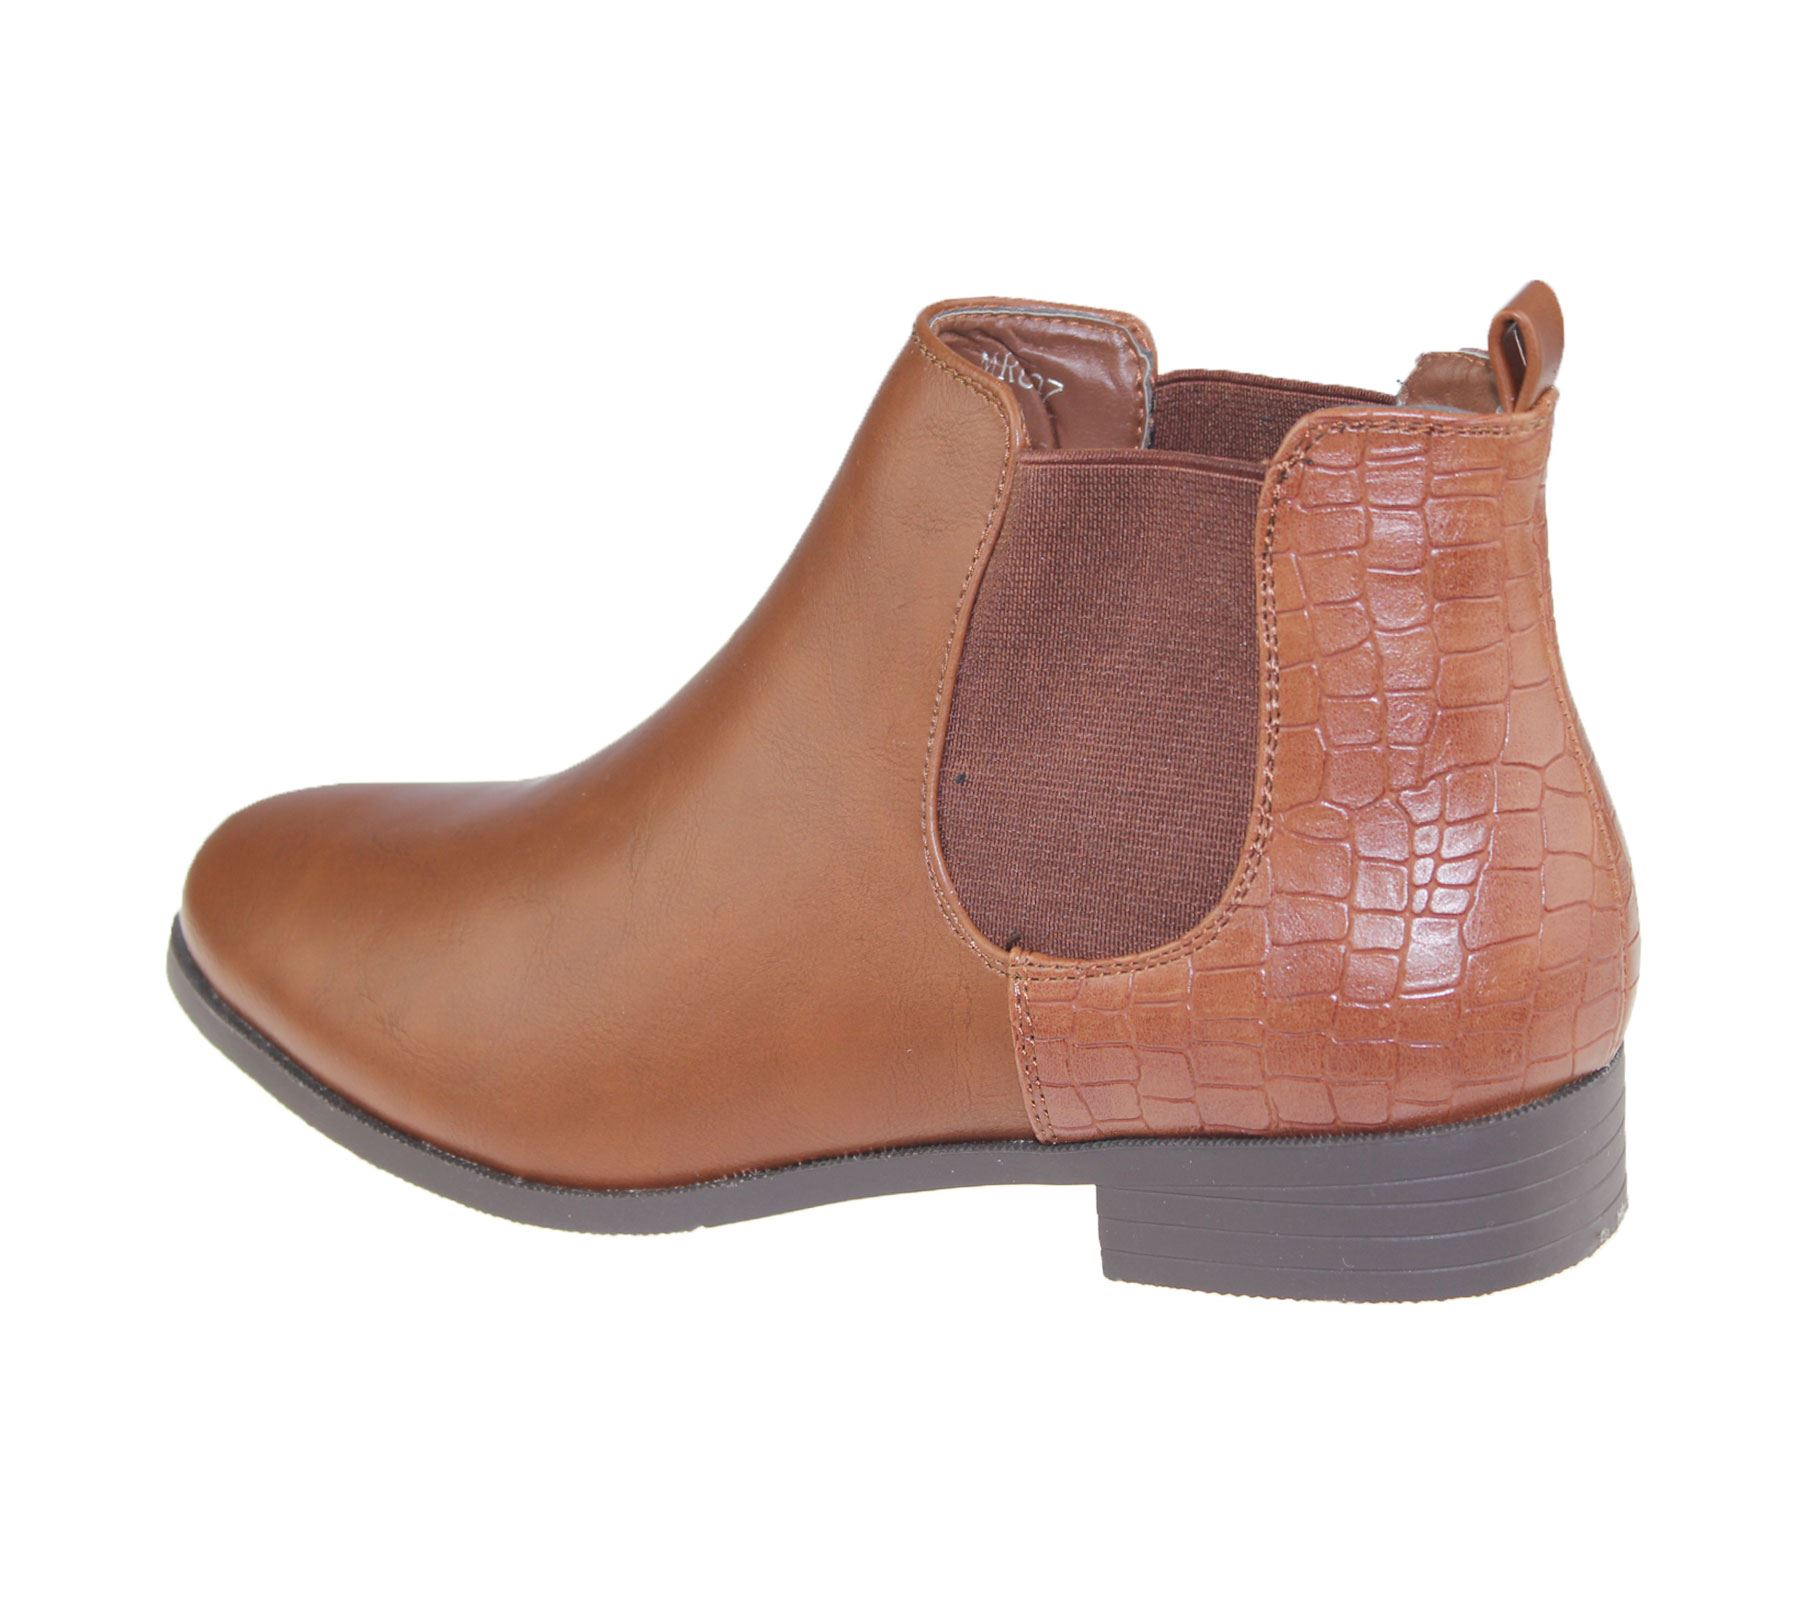 Womens-Ankle-Boots-Ladies-Chelsea-High-Top-Casual-Riding-Elasticated-Shoes-Size thumbnail 4